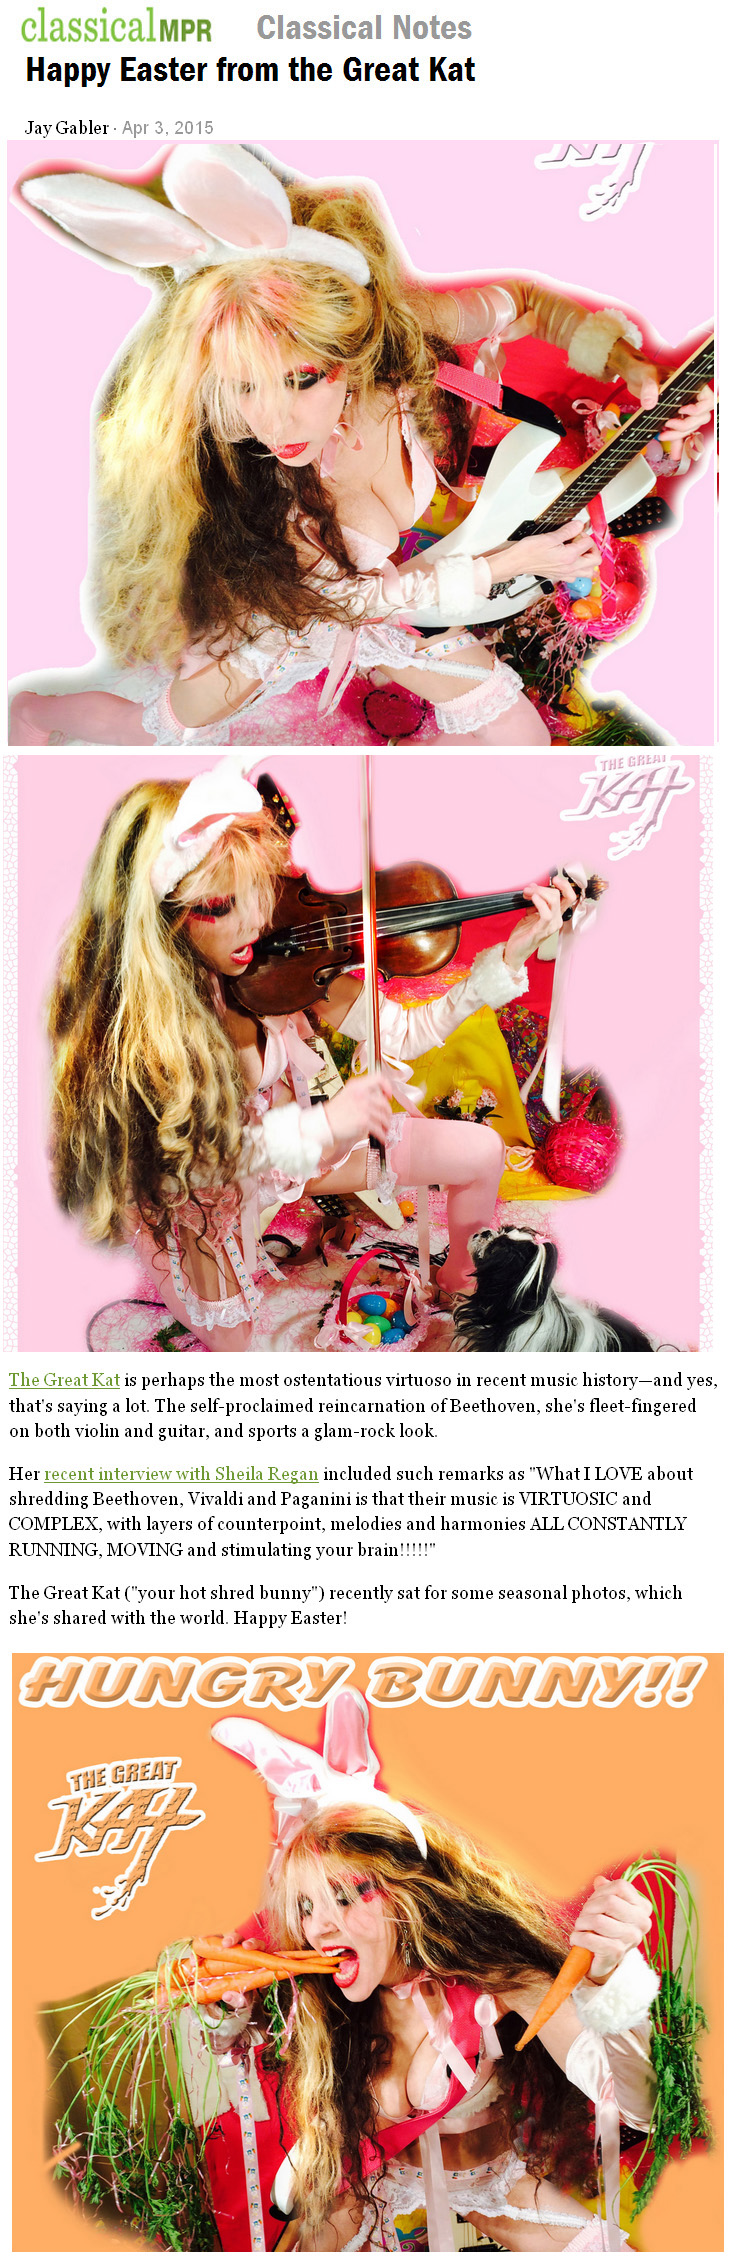 """CLASSICAL MPR FEATURES THE GREAT KAT IN """"HAPPY EASTER FROM THE GREAT KAT""""! """"The Great Kat is perhaps the most ostentatious virtuoso in recent music history—and yes, that's saying a lot. The self-proclaimed reincarnation of Beethoven, she's fleet-fingered on both violin and guitar, and sports a glam-rock look."""" - Jay Gabler, Classical MPR"""